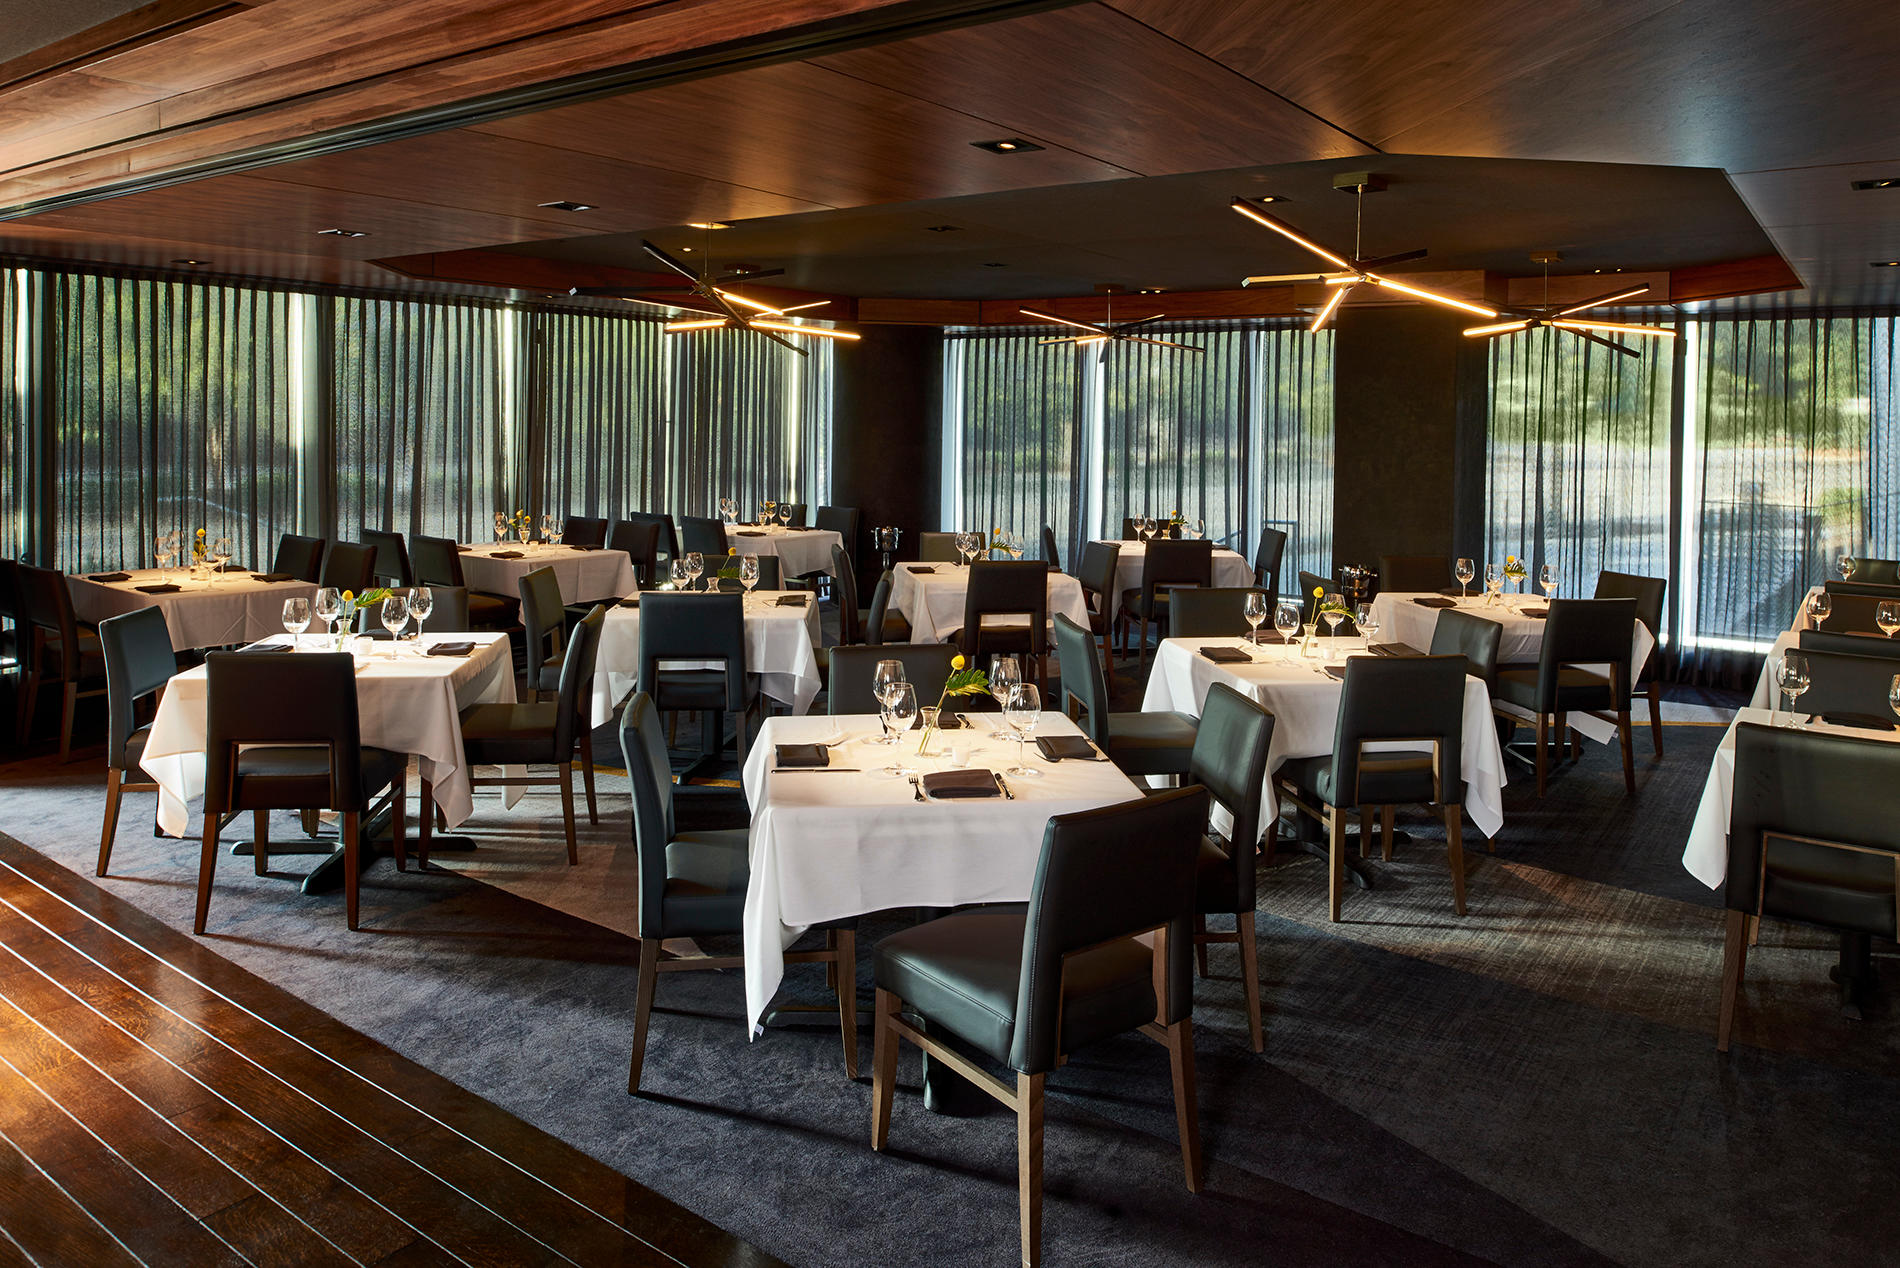 Del Frisco's Double Eagle Steakhouse Dunwoody Oak Room private dining room